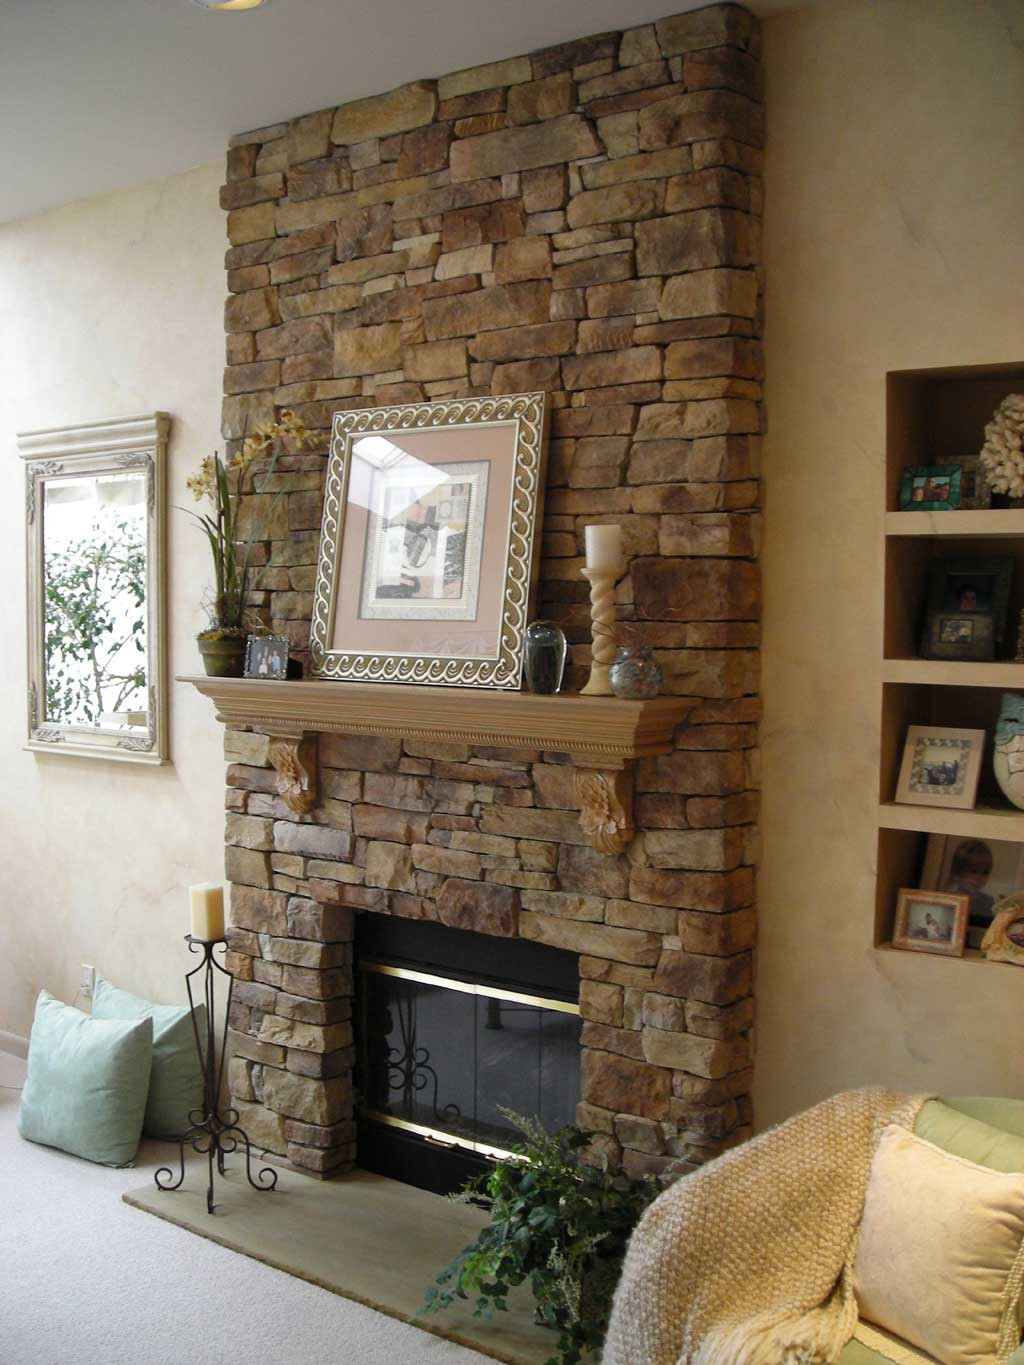 Best ideas about DIY Fireplace Mantel Ideas . Save or Pin DIY Fireplace Mante Kits Now.